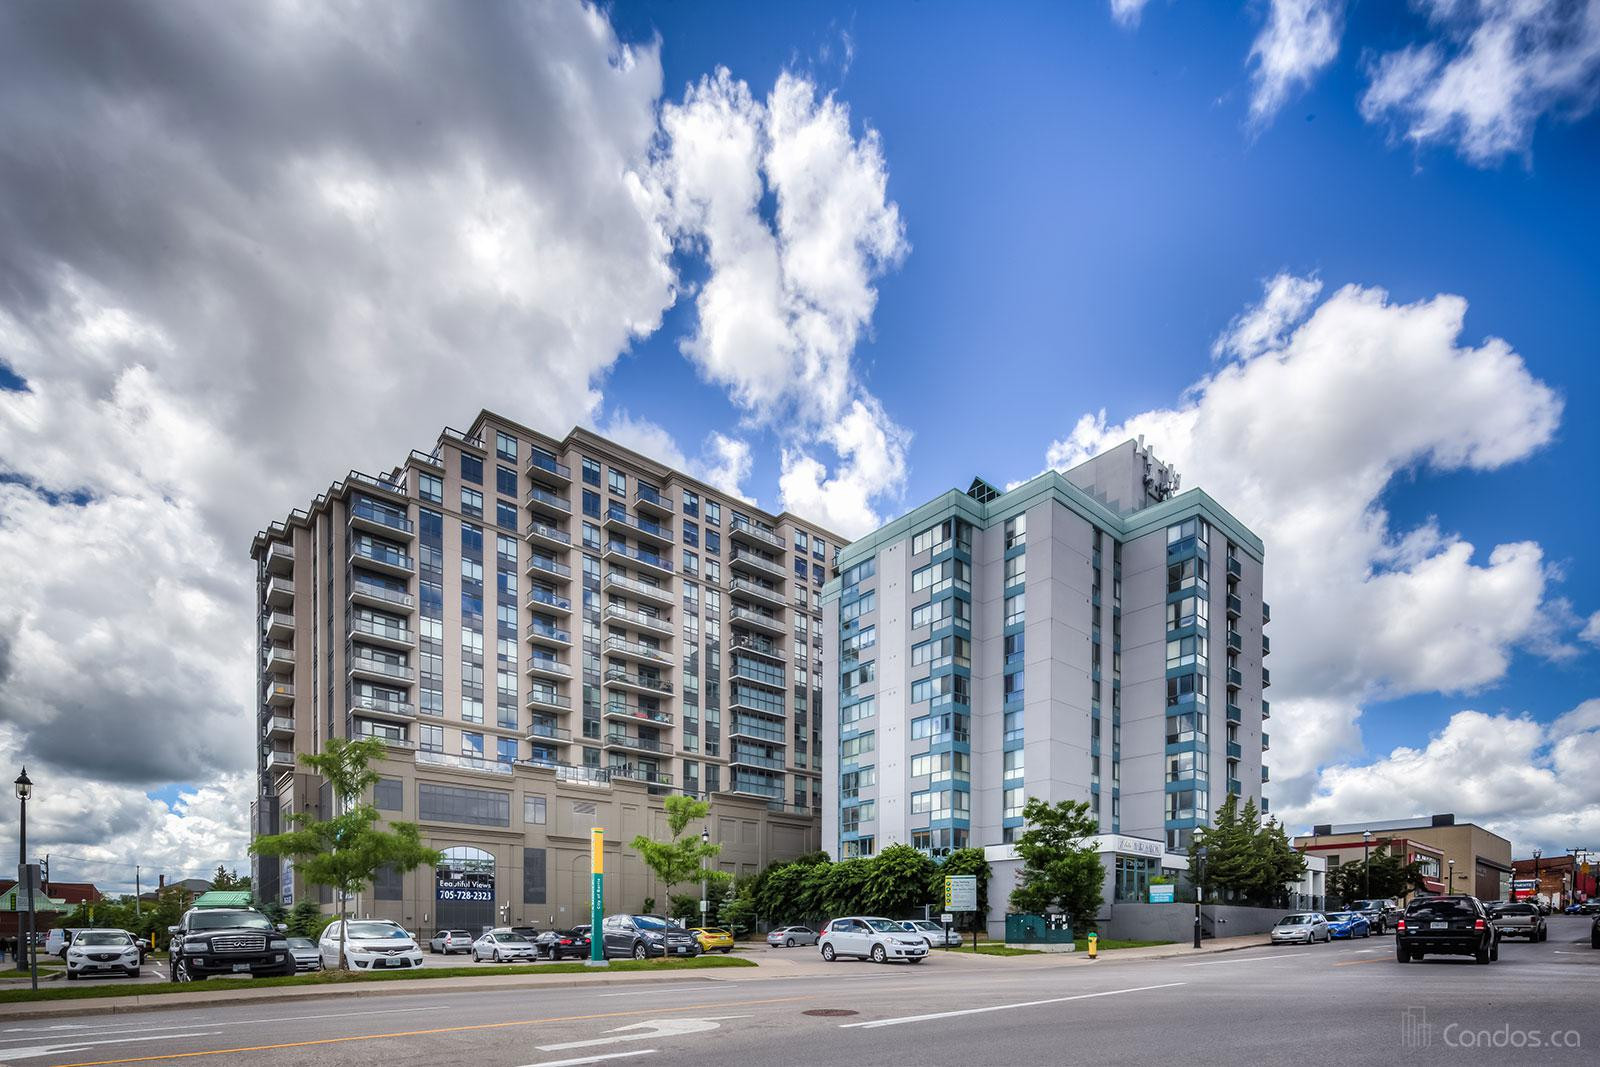 6 Bayfield Condos at 6 Bayfield St, Barrie 1